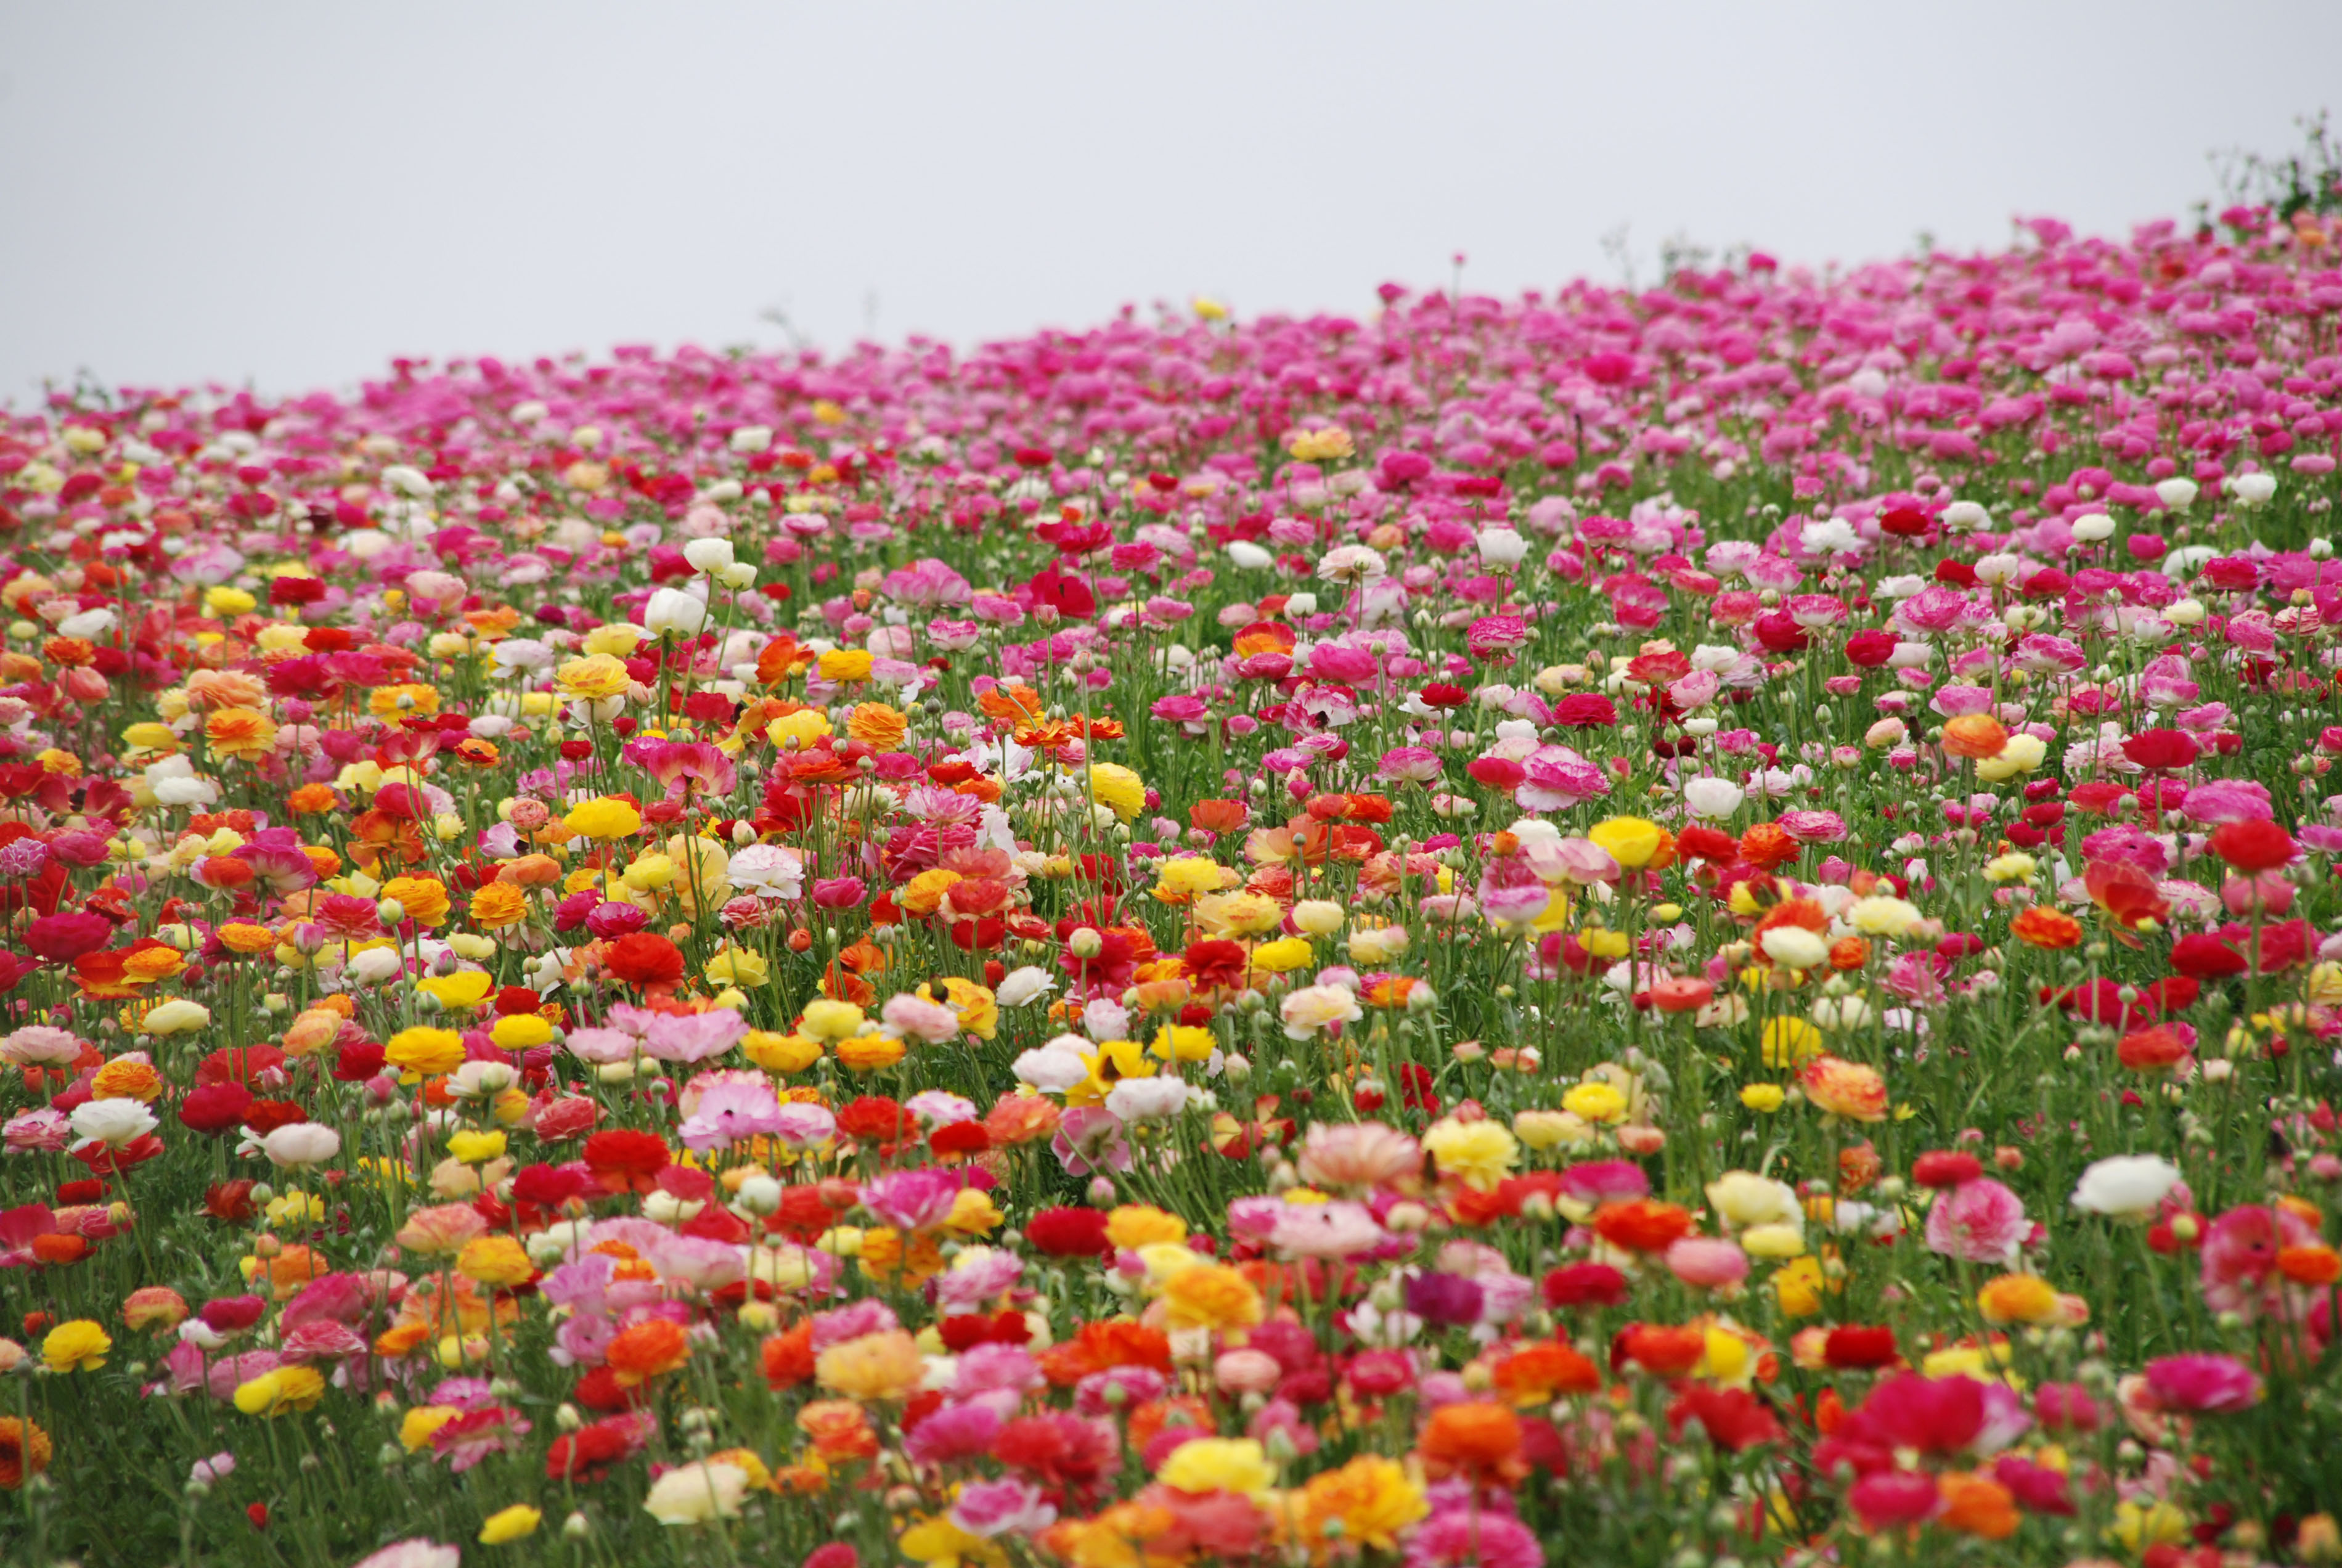 The Flower Fields Visit Carlsbad California with We Said